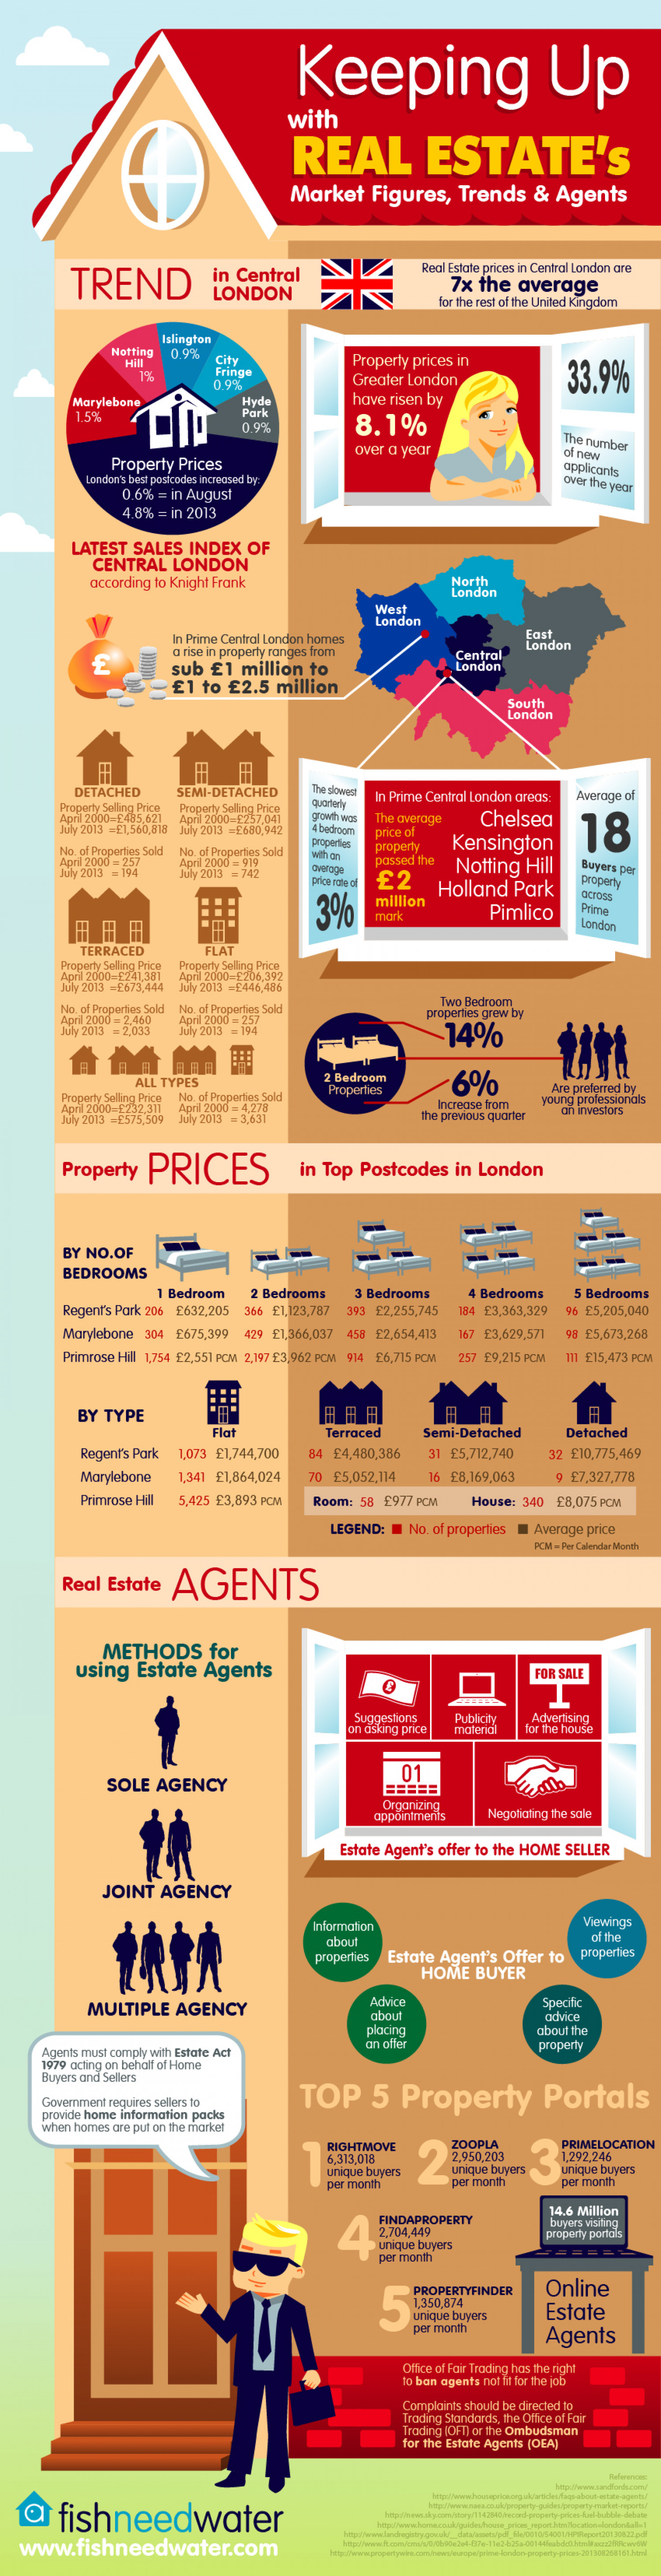 Keeping Up With Real Estate'S Market Figures, Trends, and Agents Infographic